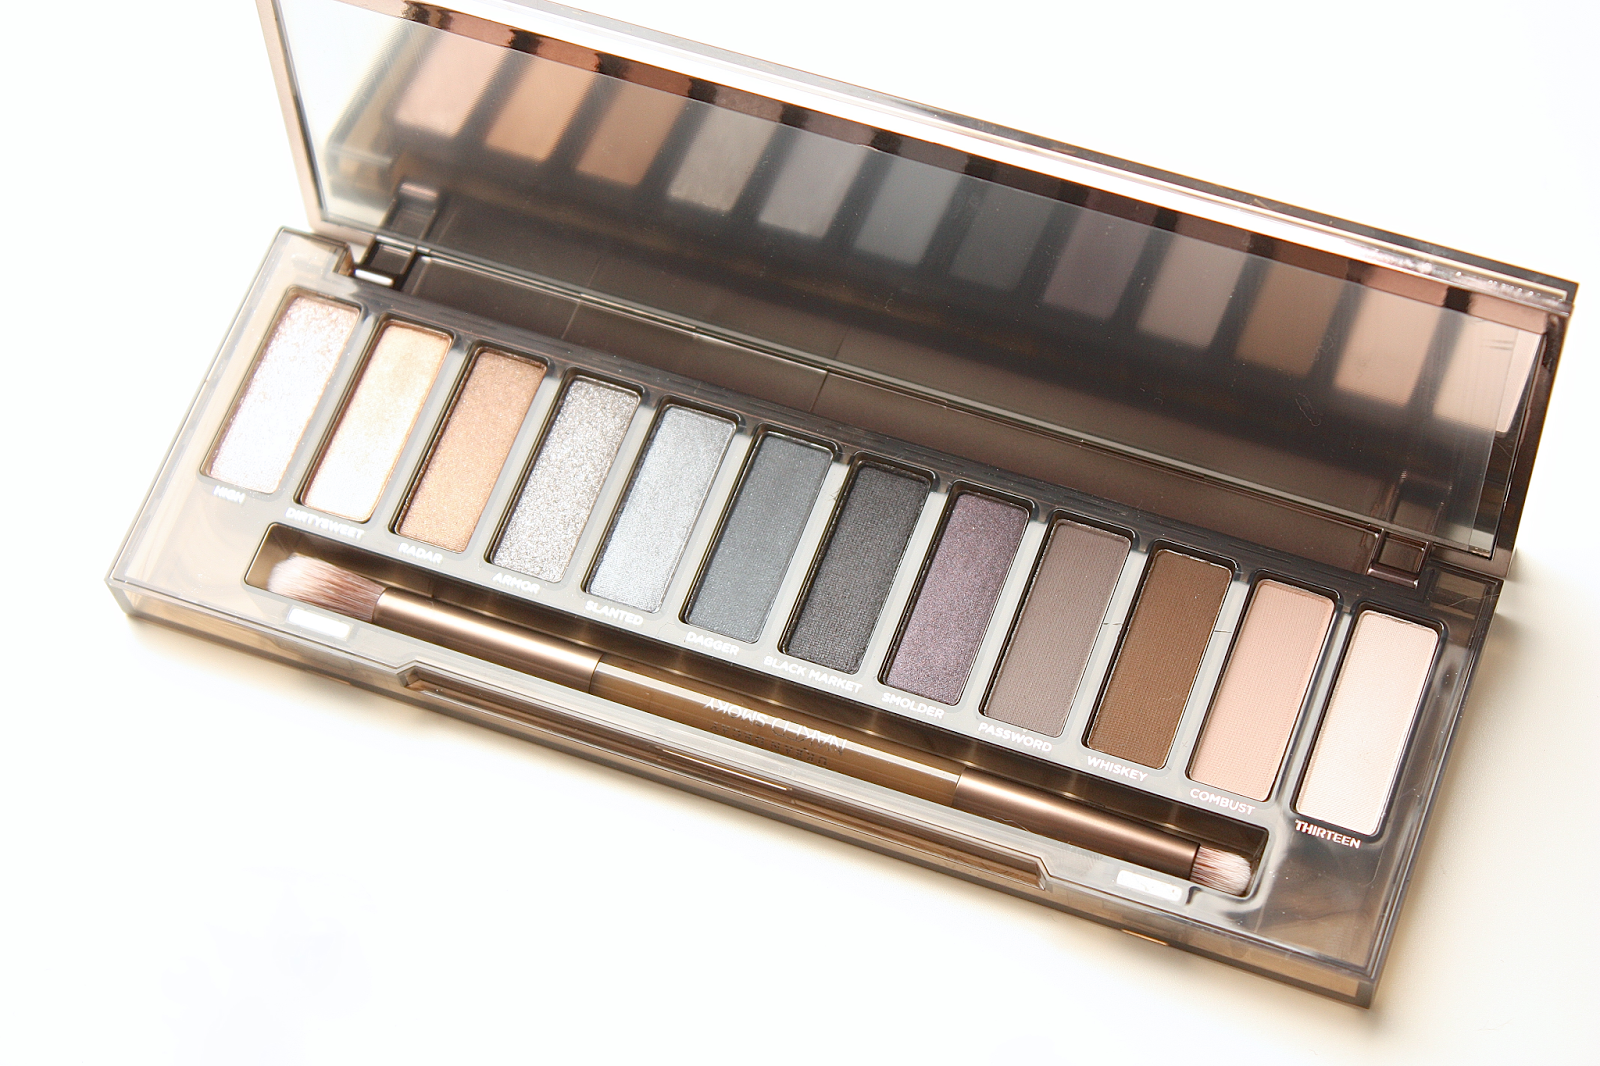 Urban decay smoky palette макияж